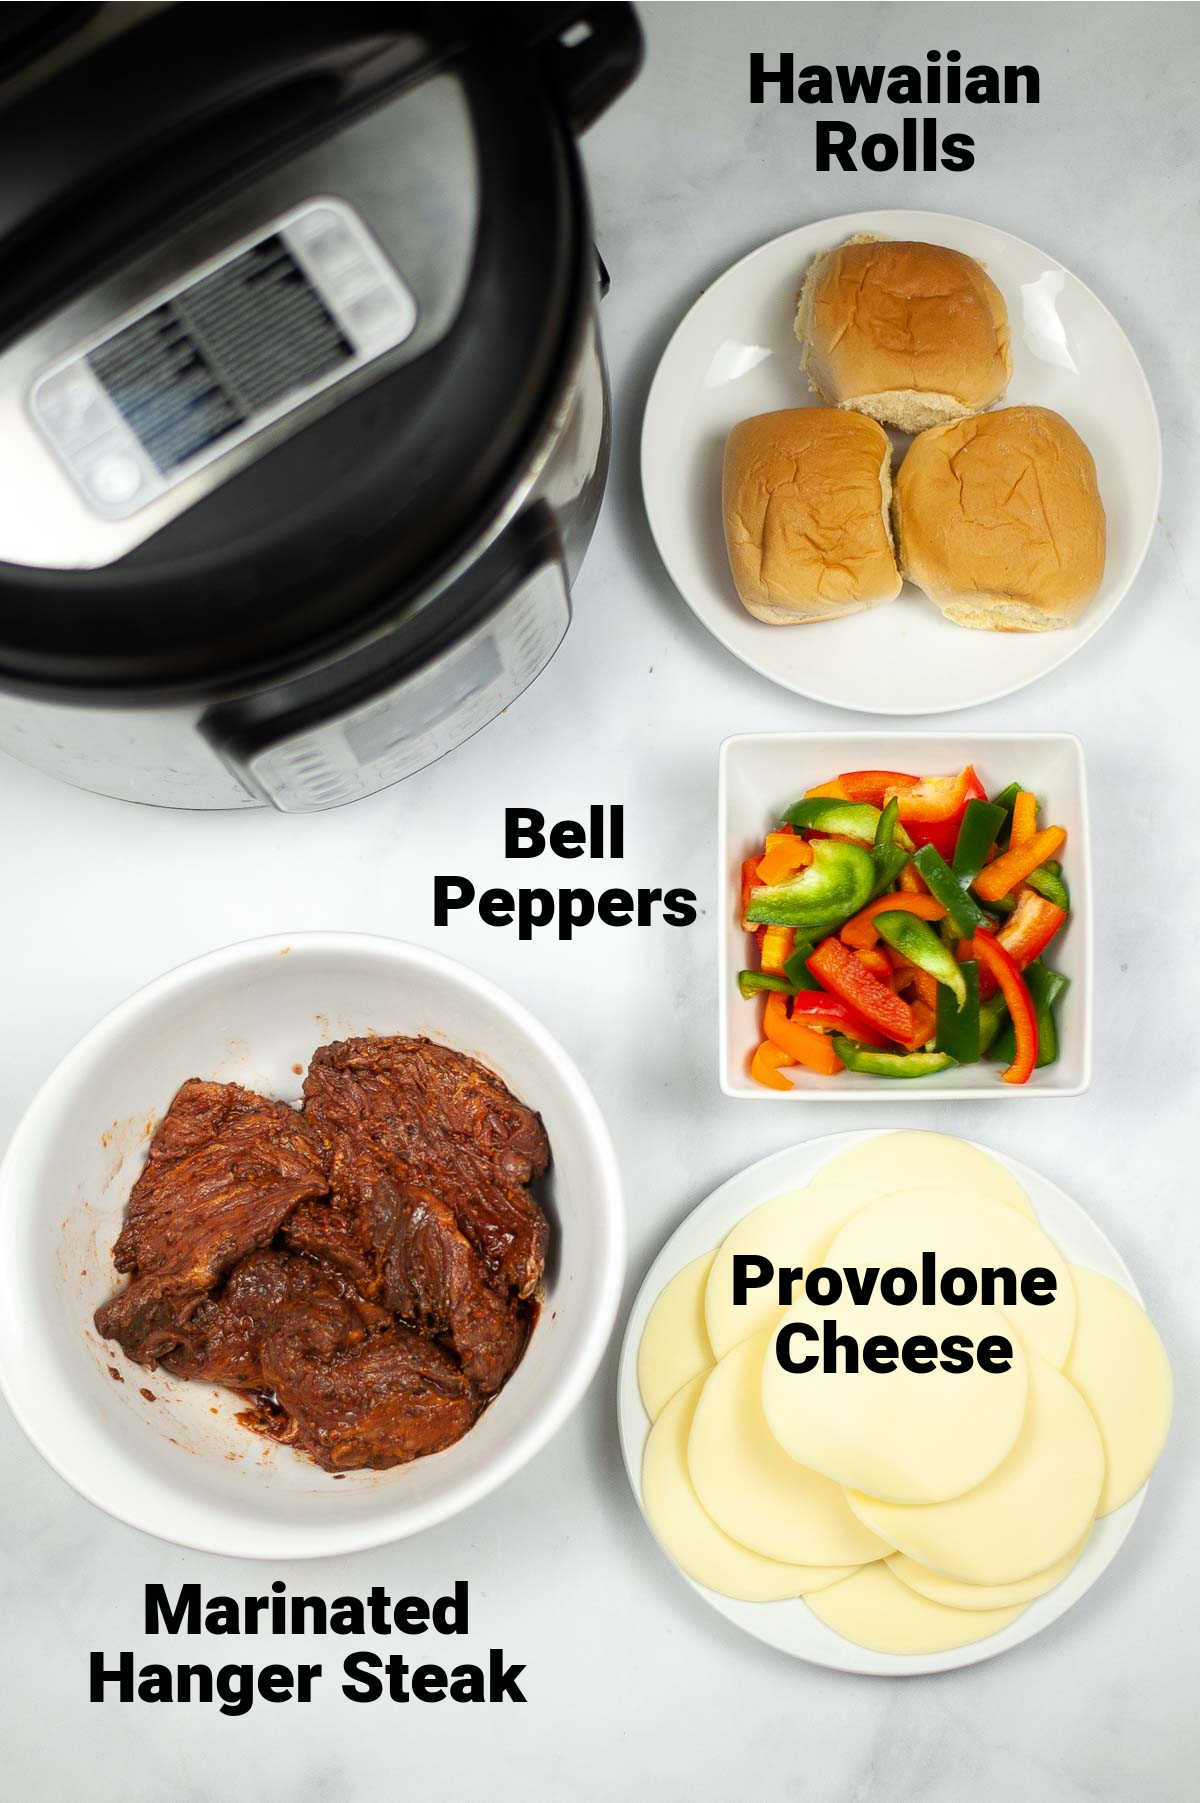 ingredient photo showing steak, cheese, peppers and rolls with labels.